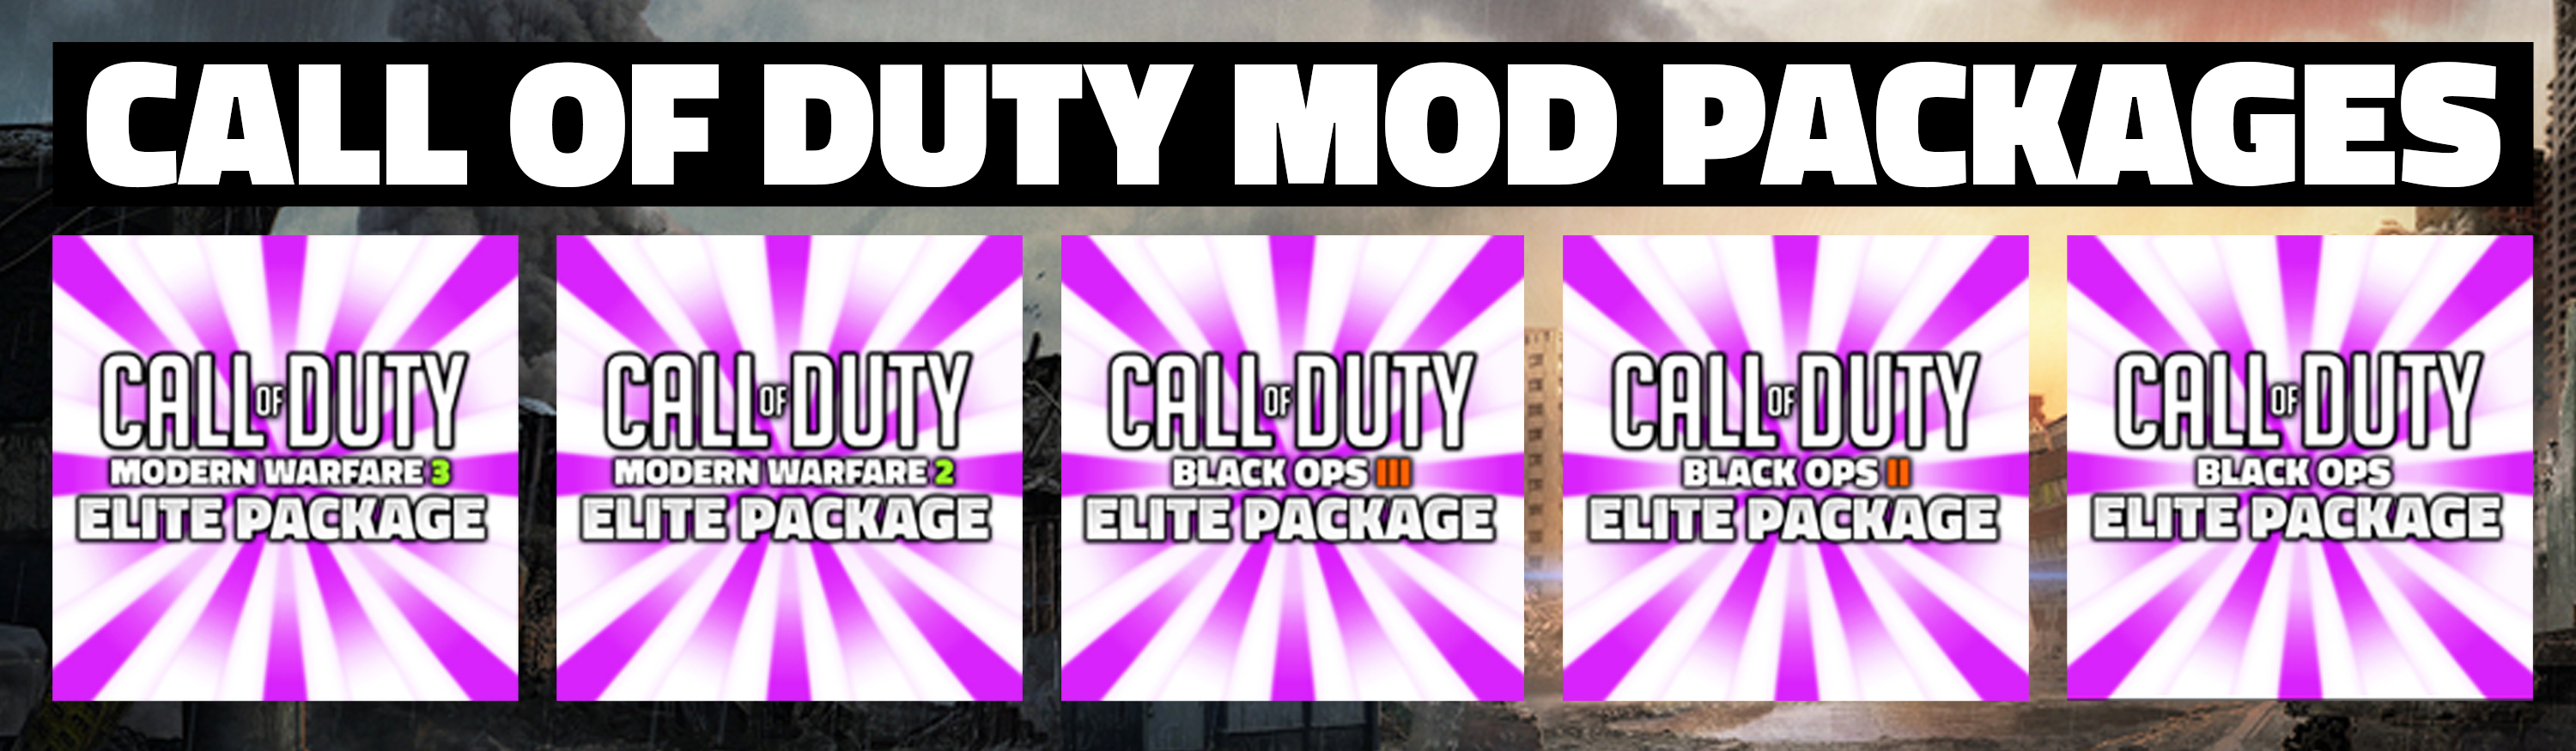 COD Mod Packages